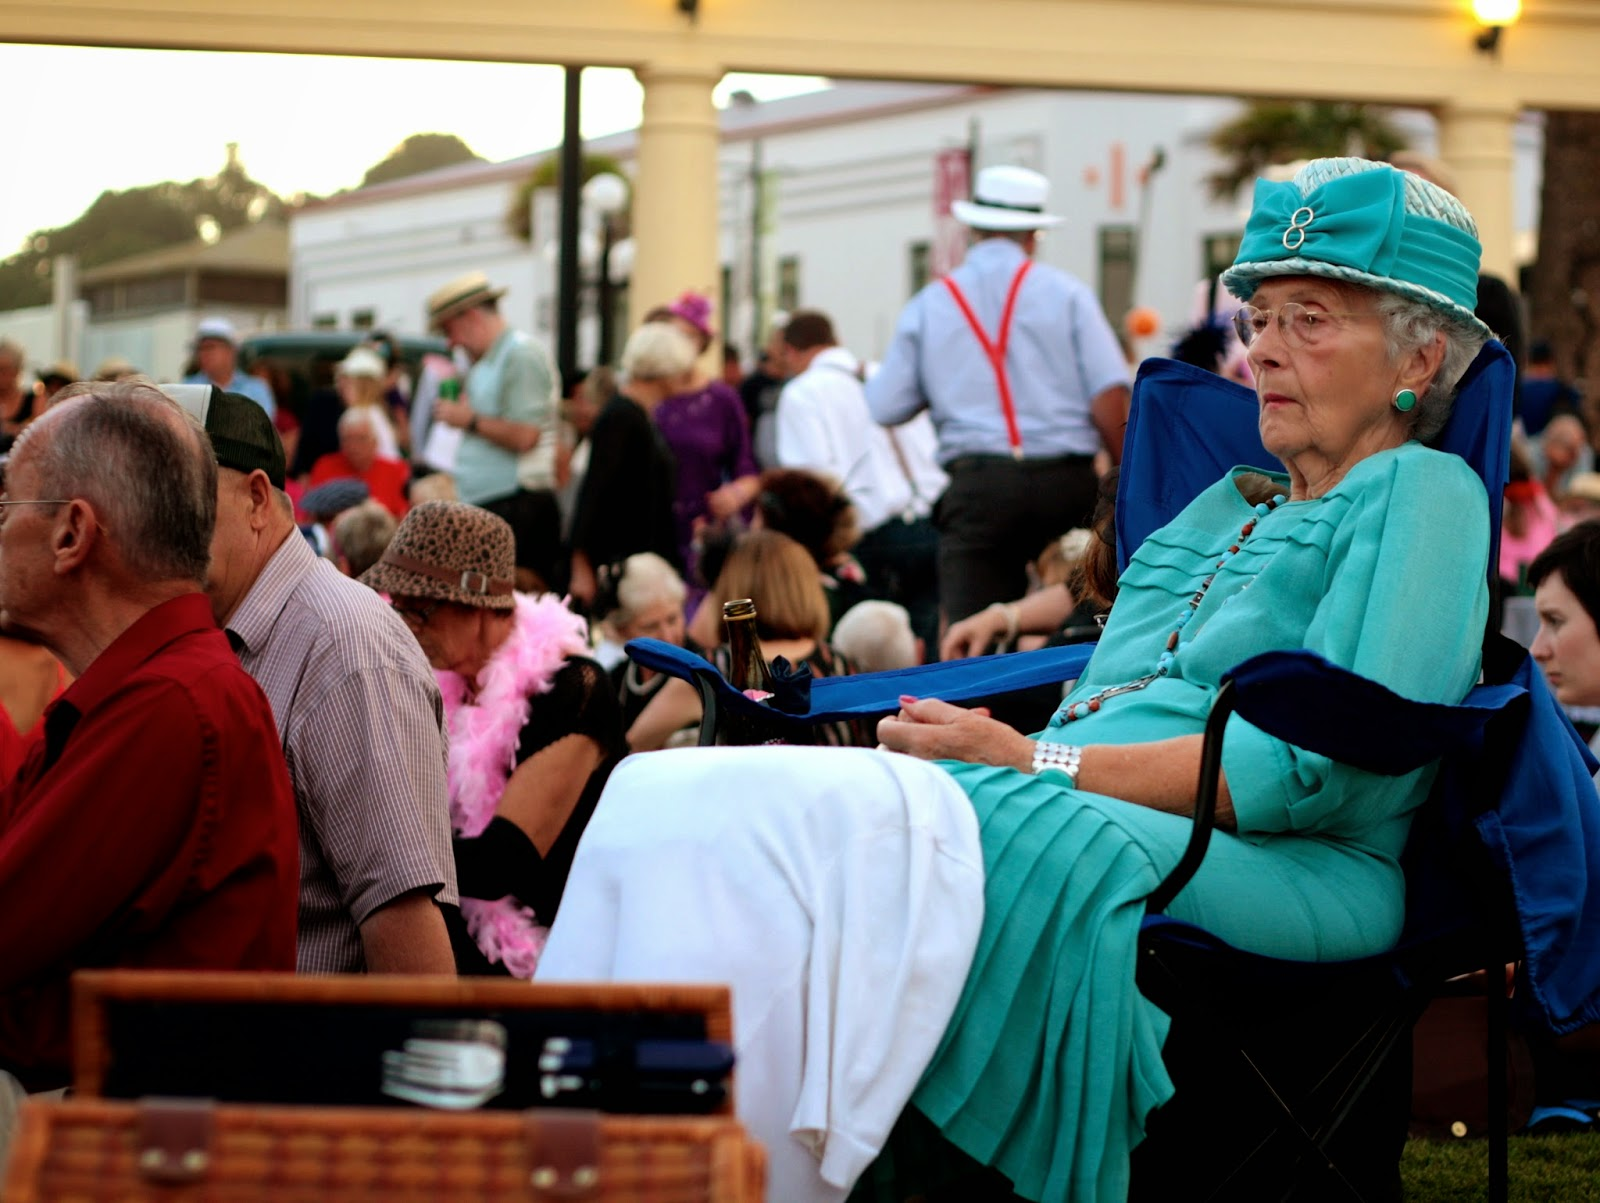 An older woman wears a mint green dress and matching hat.